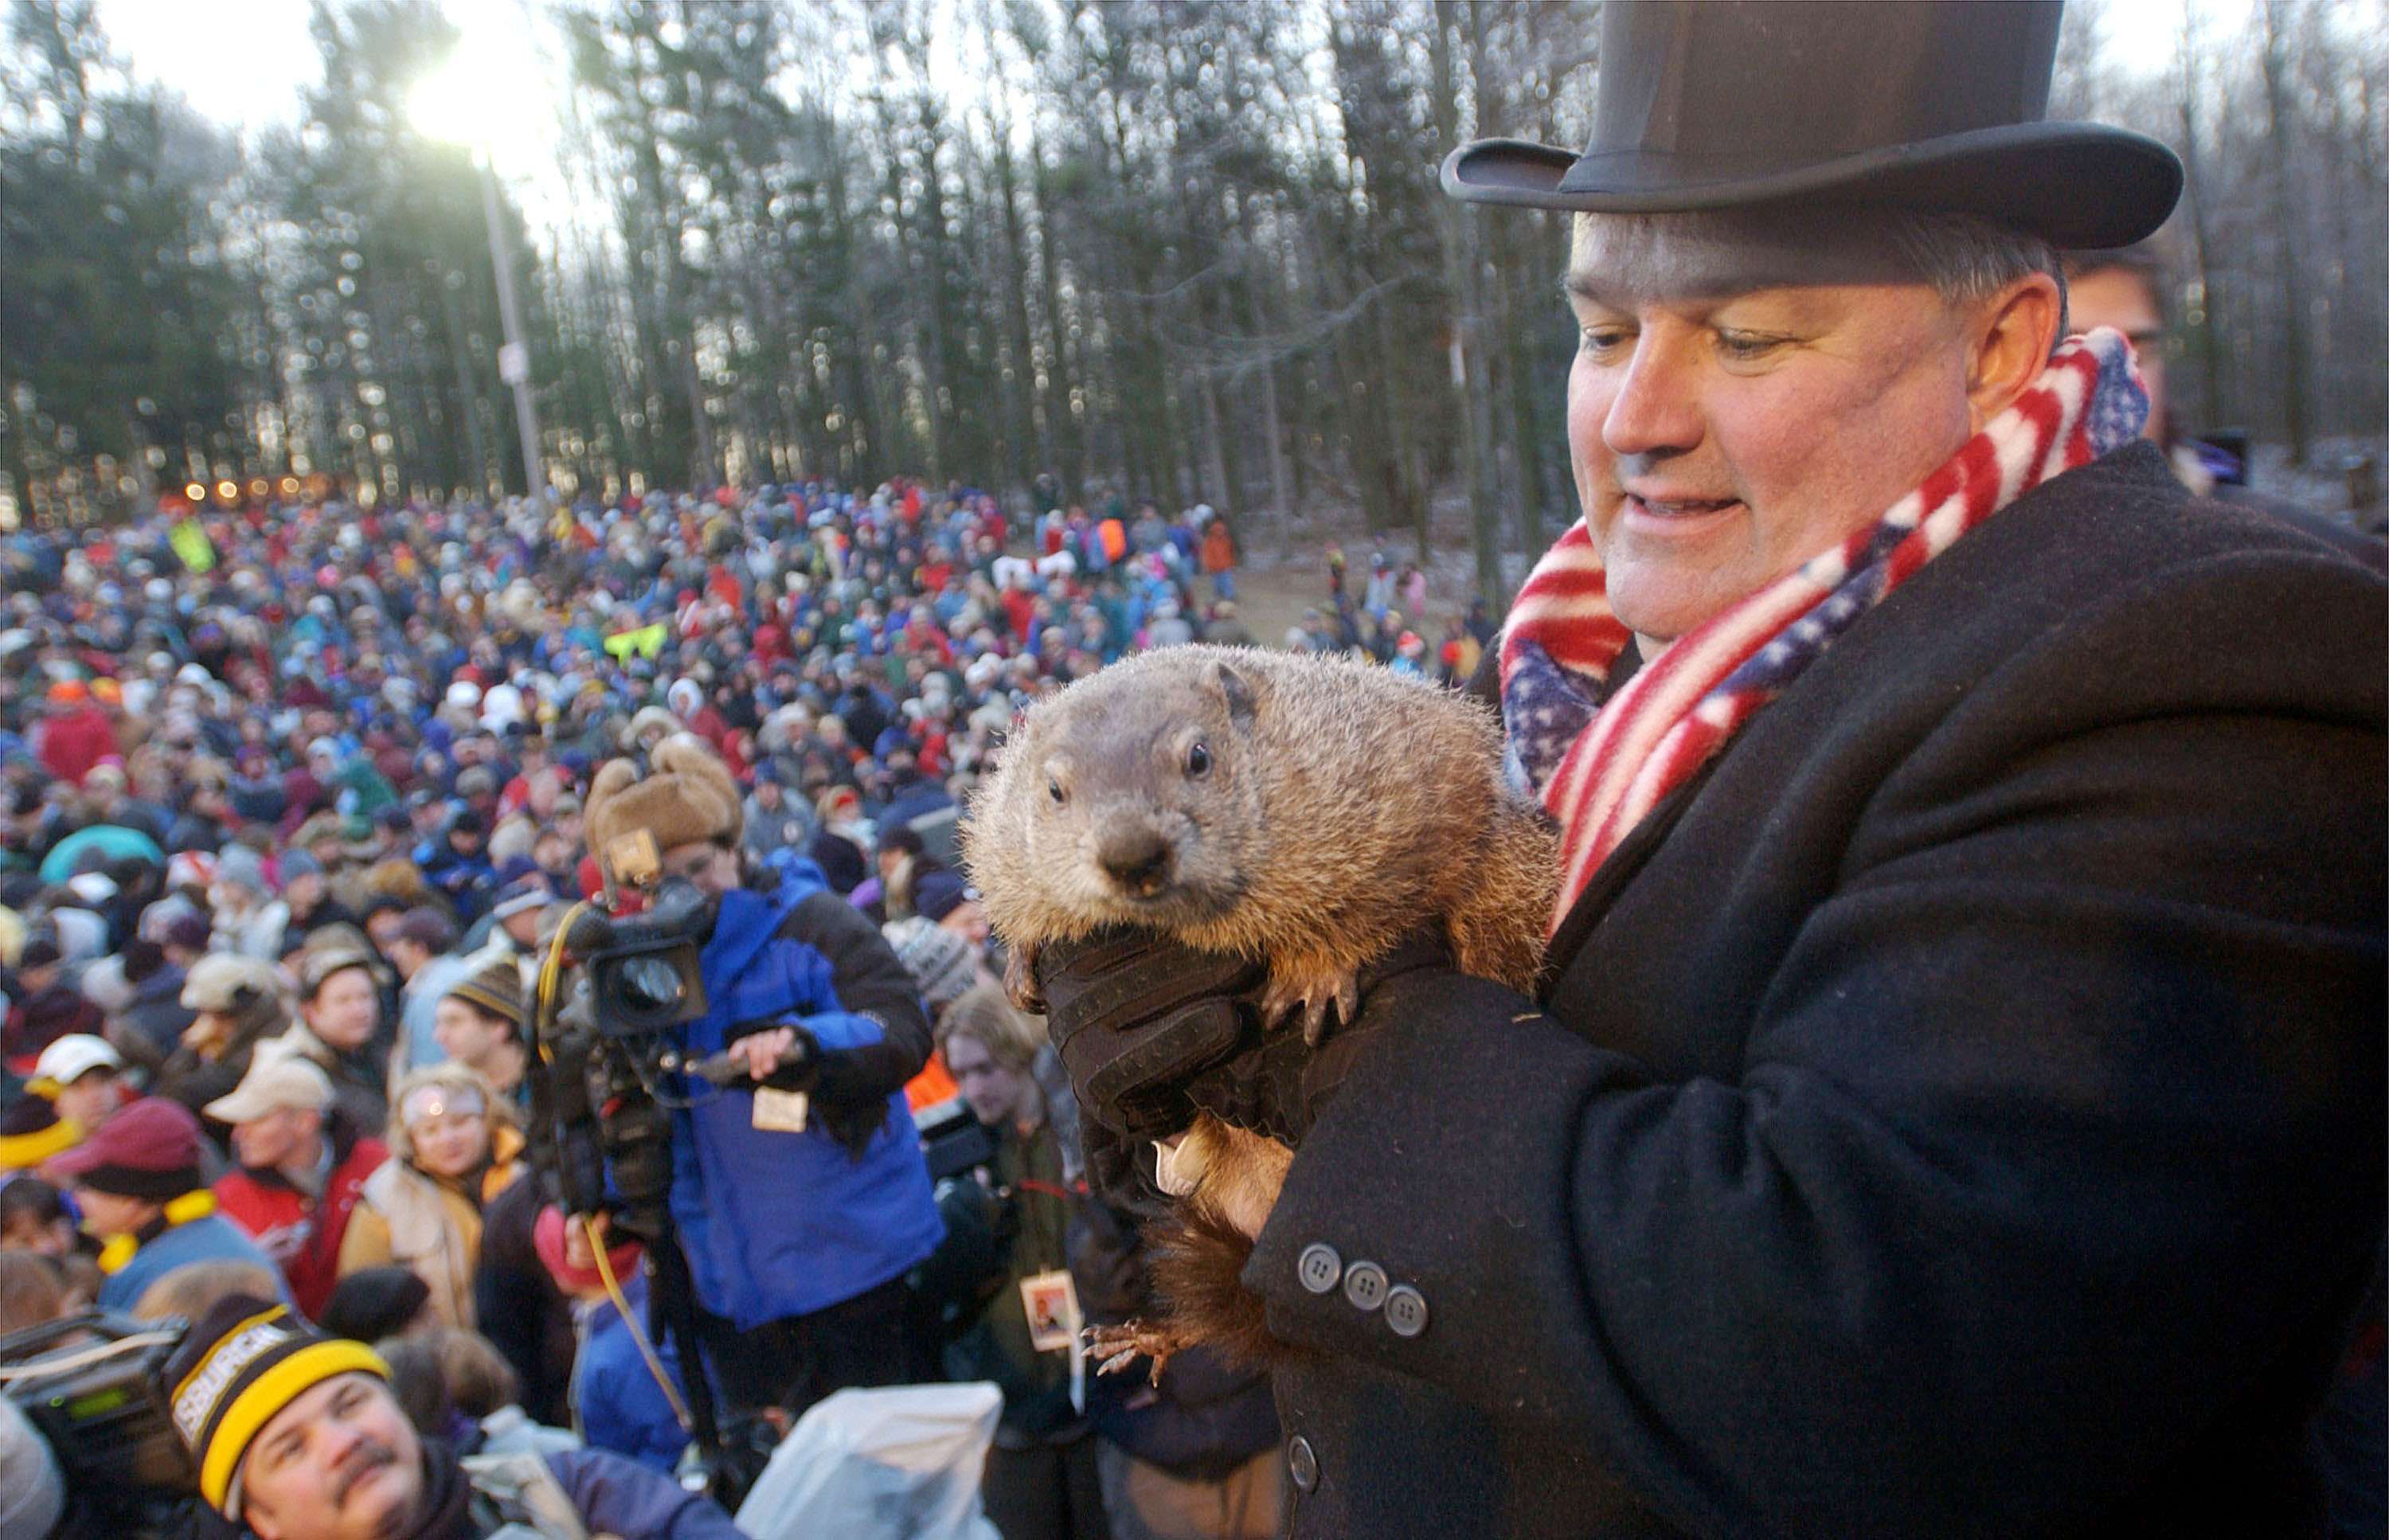 Groundhog handler Bill Deeley and Punxsutawney,Phi